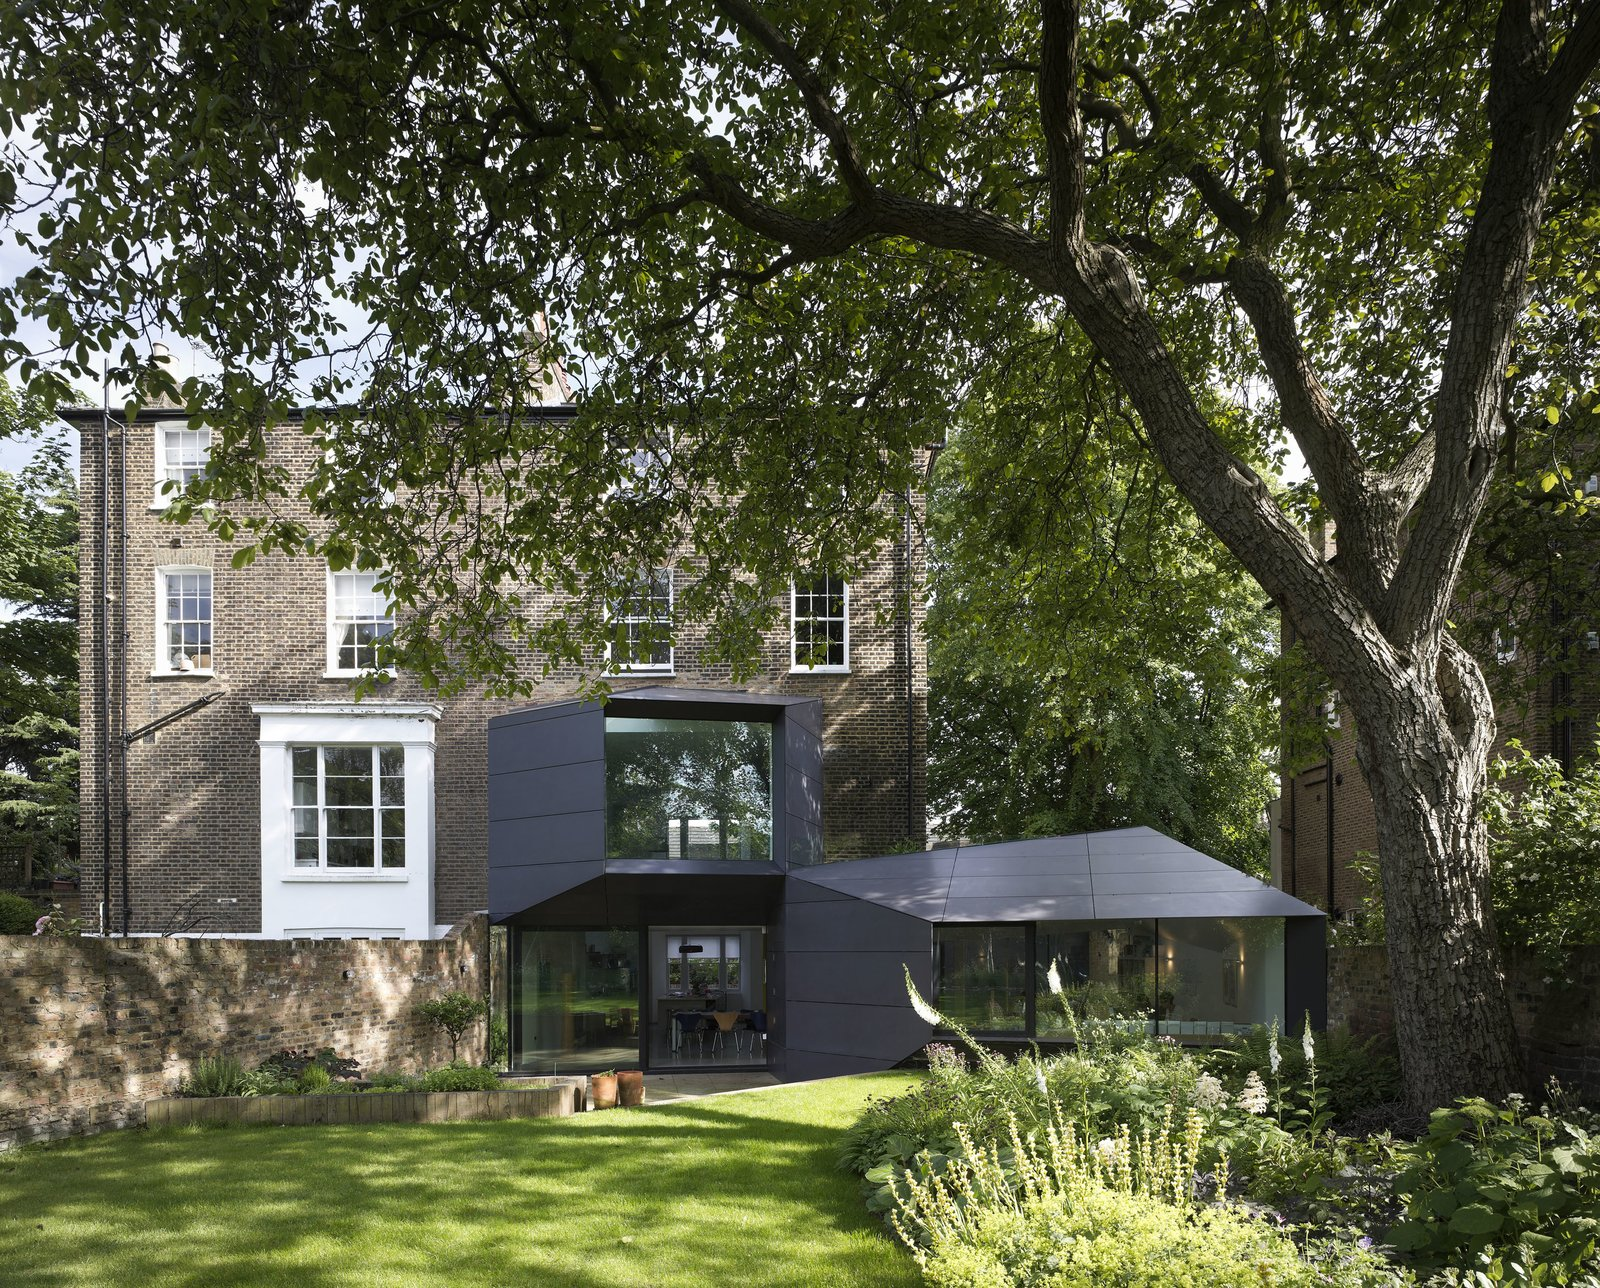 """The roughly 5,000-square-foot Lens House renovation, which was finished in 2012 and just won a 2014 RIBA National Award, required six years, major remedial work on the roof and walls, approval from the planning committee, and even a sign-off from a horticulturalist to guarantee the backyard excavation didn't interfere with a walnut tree. """"These things aren't for people who are in a hurry,"""" says architect Alison Brooks. The focus is the ten-sided trapezoidal office addition. """"It wraps itself around the house with a completely different set of rules than the Victorian building,"""" she says."""